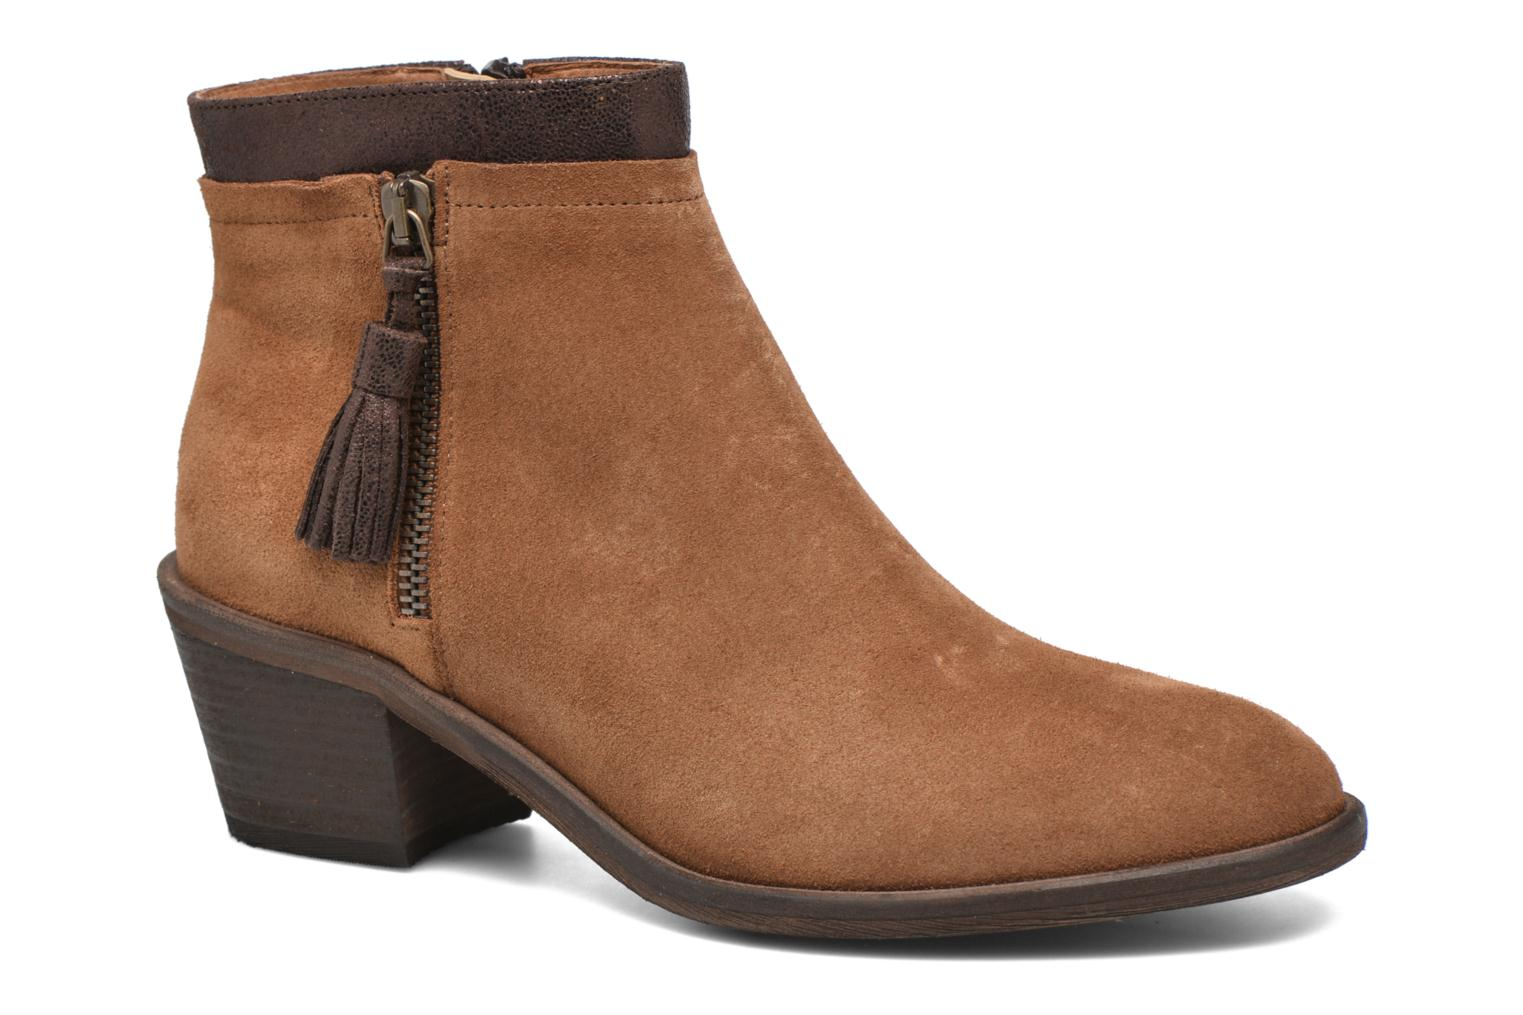 Bottines et boots Schmoove Woman Neptune zip boots Marron vue détail/paire